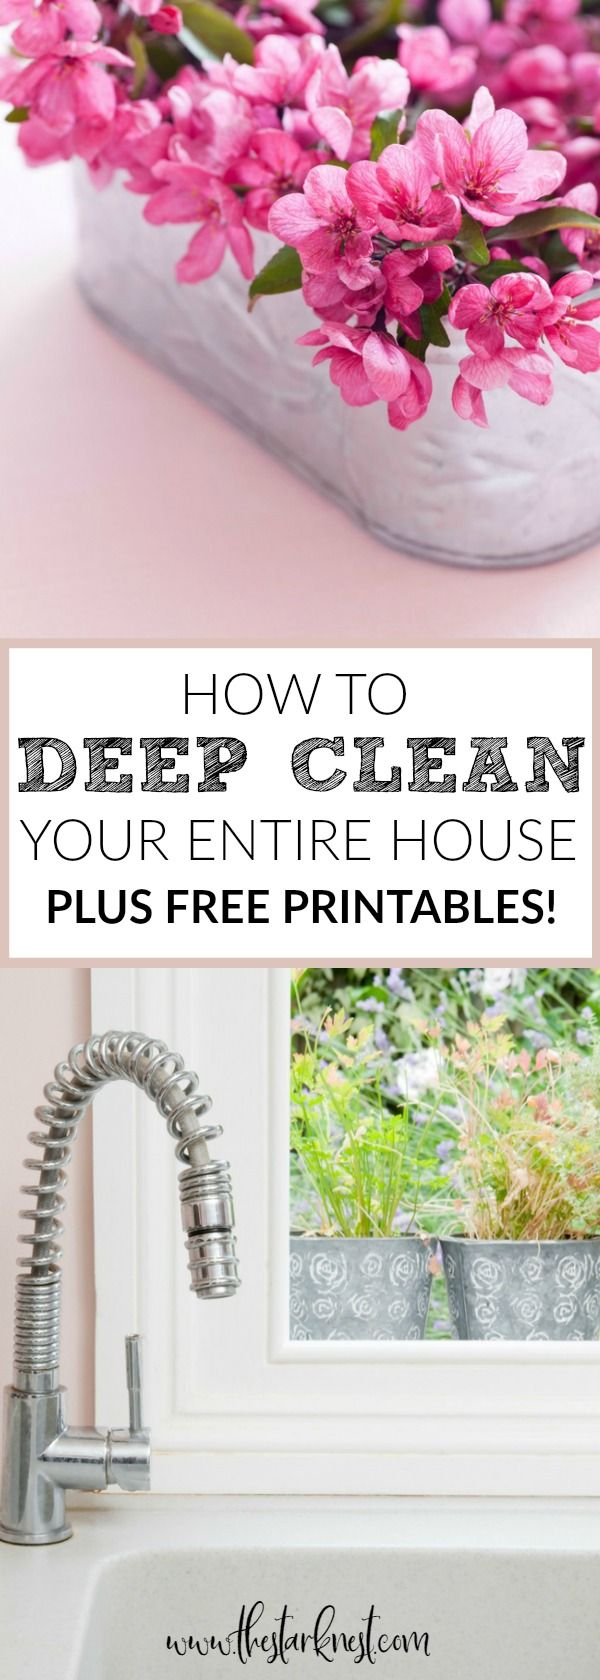 This super thorough guide is filled with tips and tricks for getting every square inch of your home sparkling clean! Plus a free spring cleaning toolkit designed to help you keep your entire house clean throughout the year! #springcleaning #cleaningtips